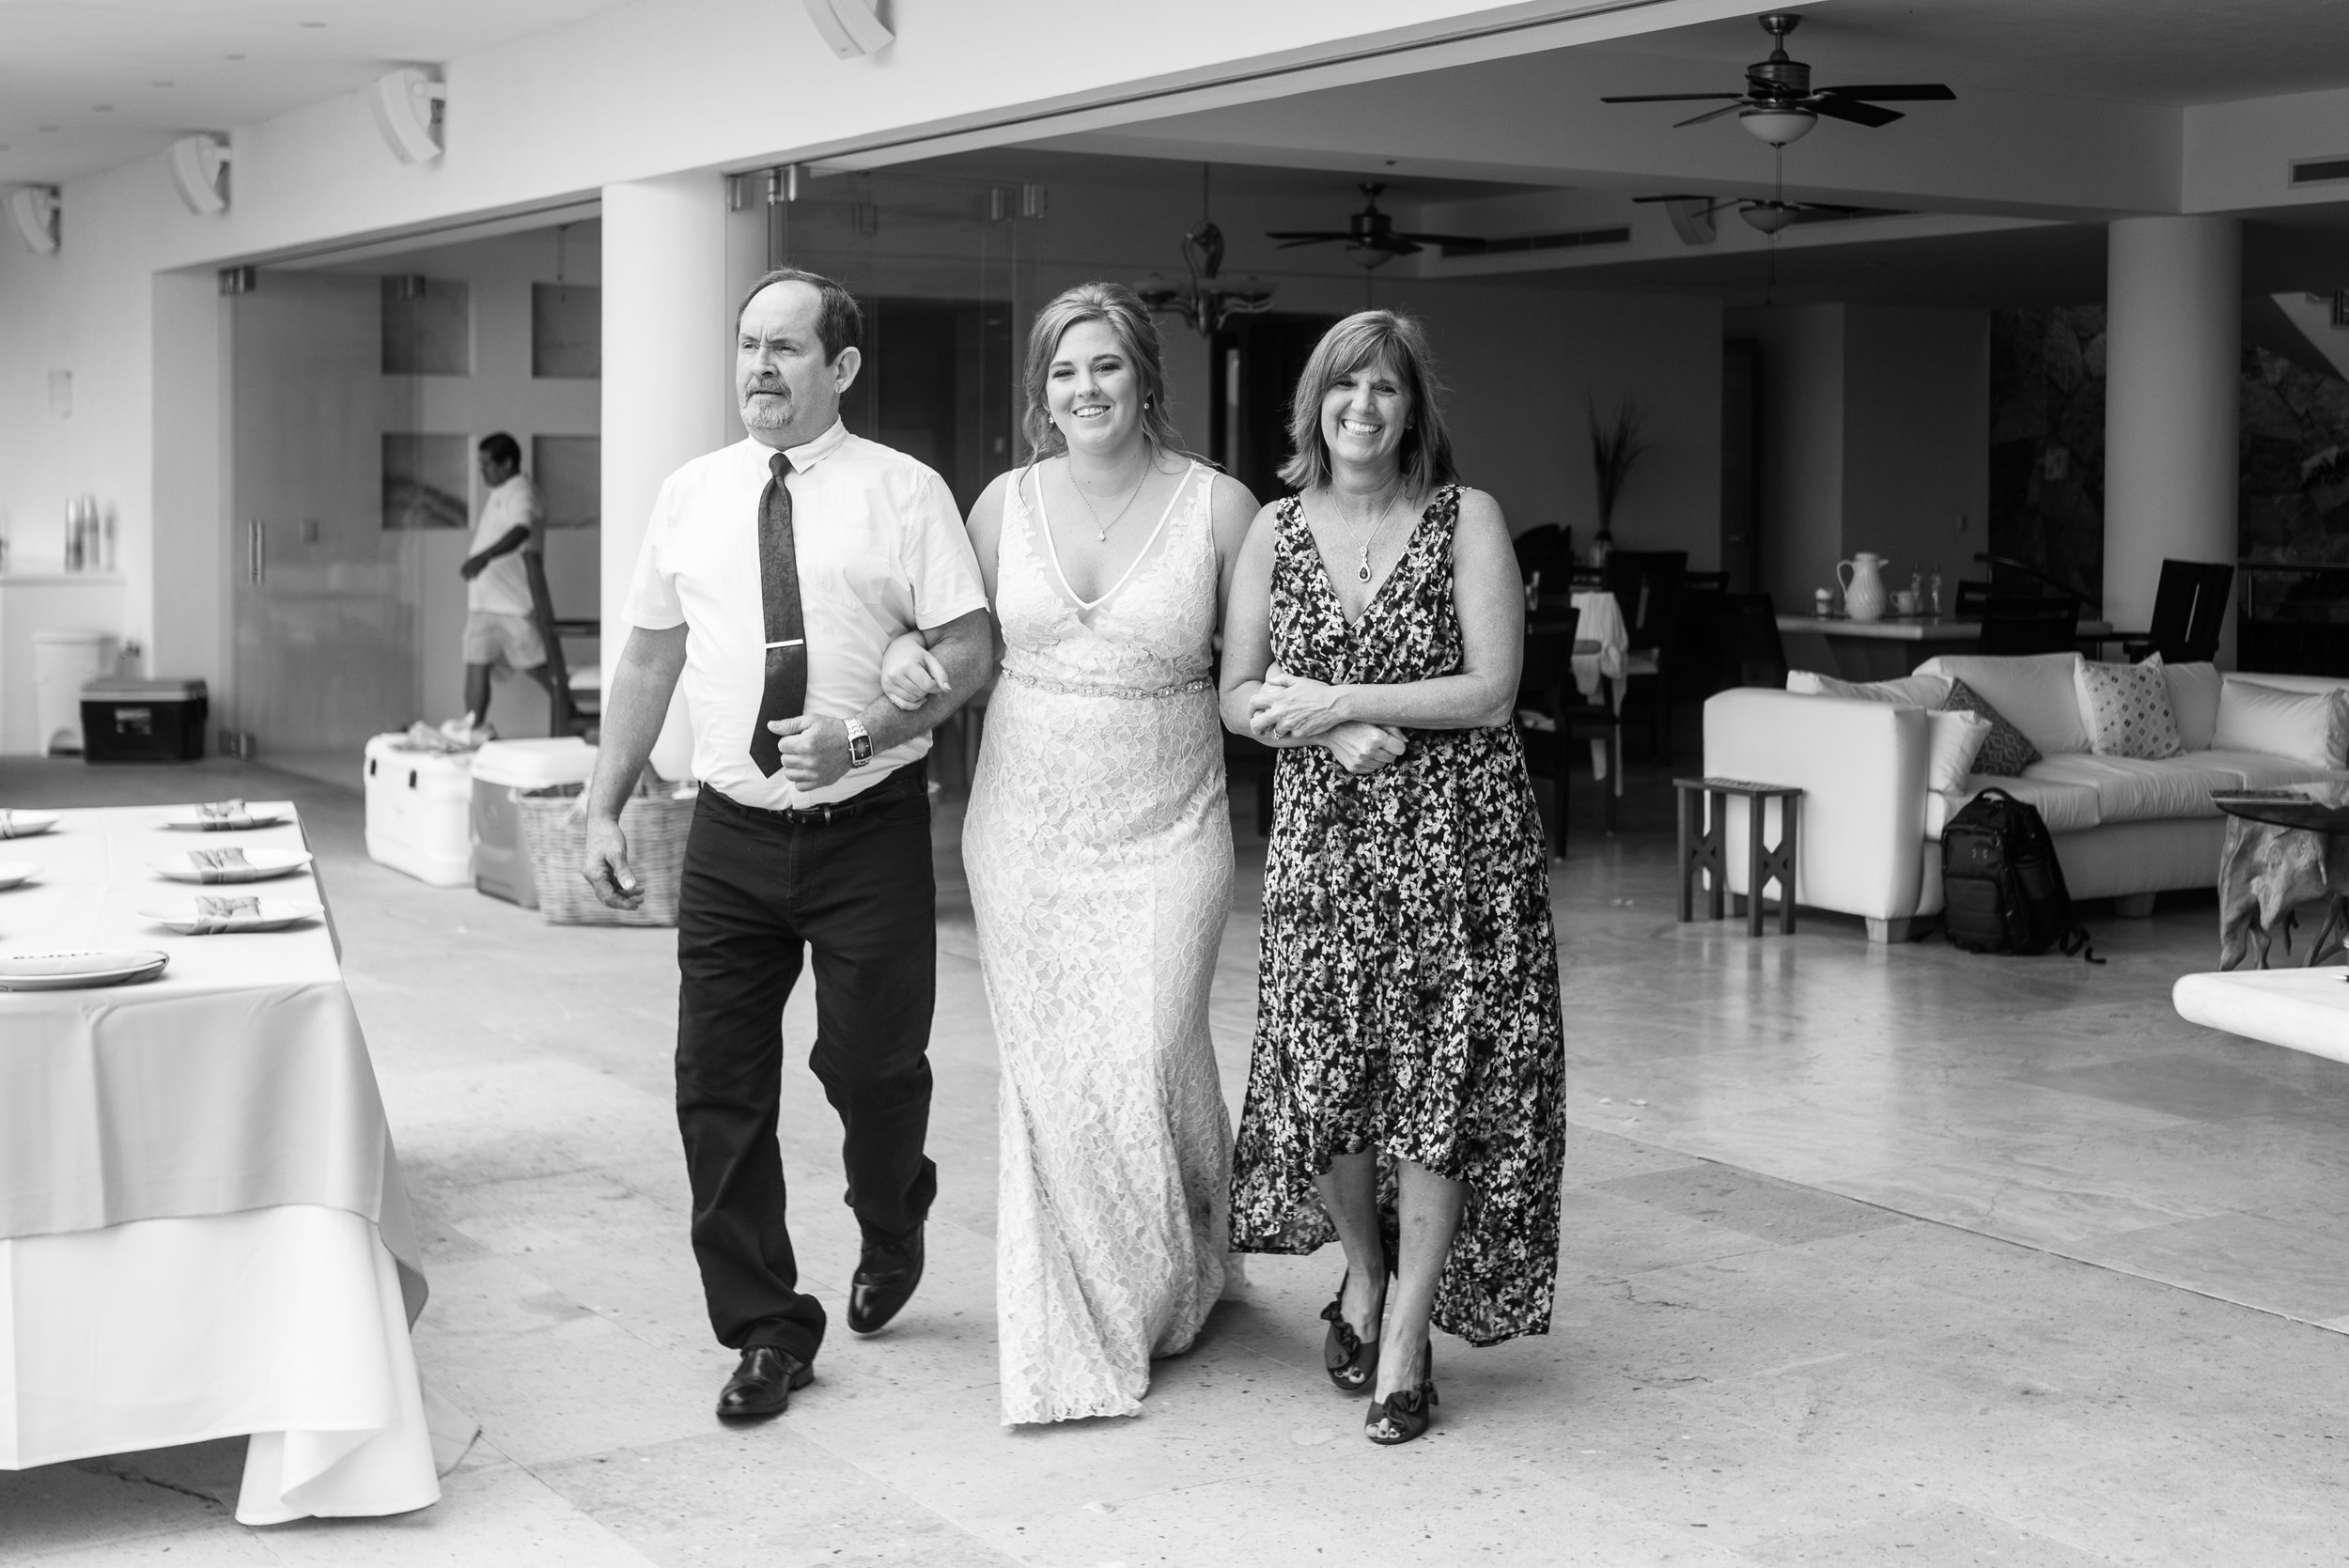 Have you mom walk you down the aisle destination wedding photographer.jpg